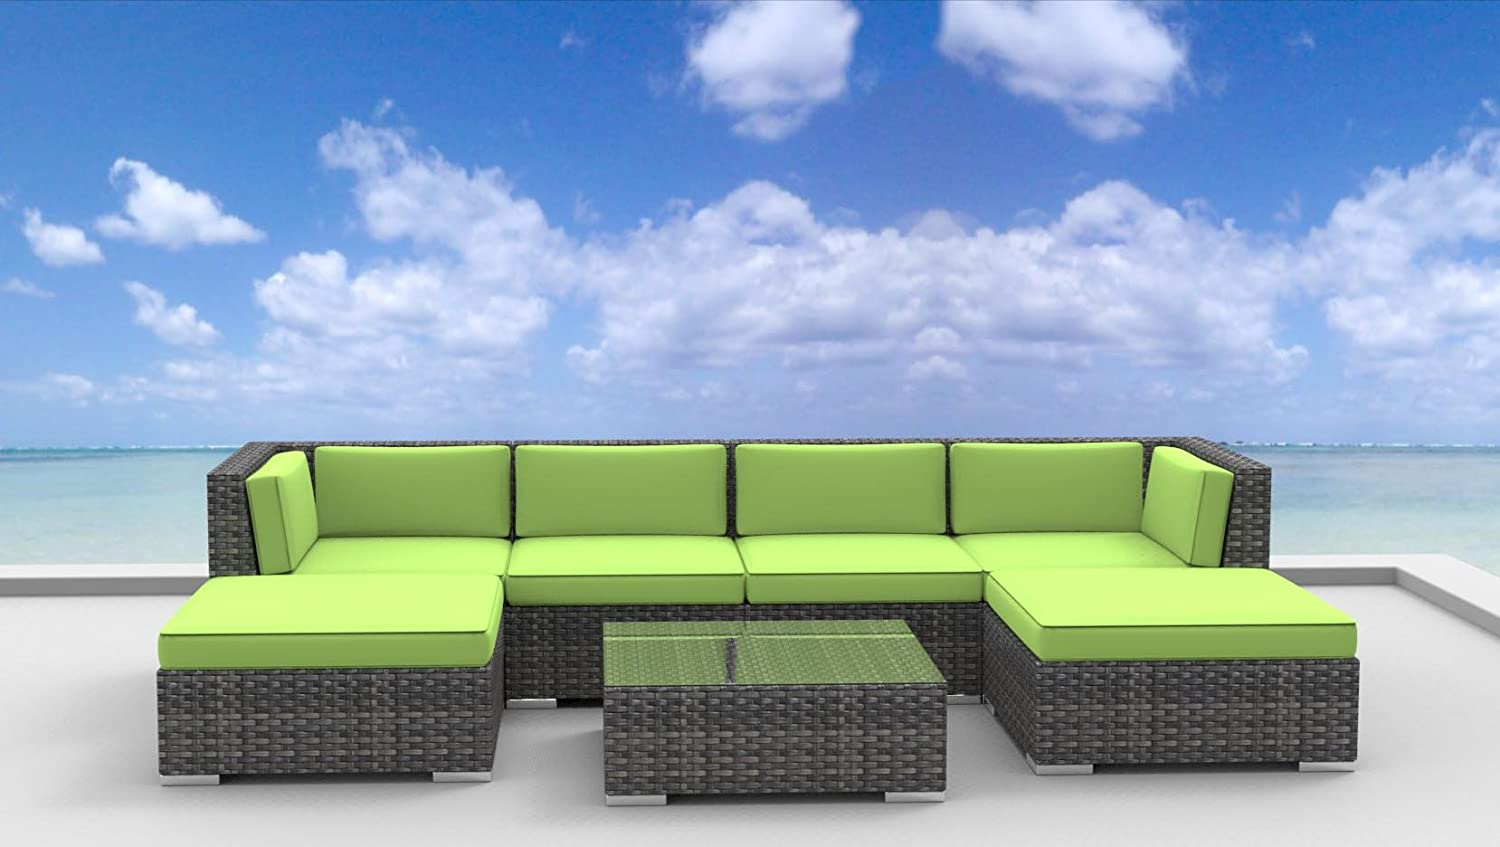 www.urbanfurnishing.net Urban Furnishing - MAUI 7pc Modern Outdoor Backyard Wicker Rattan Patio Furniture Sofa Sectional Couch Set - Lime Green at Sears.com